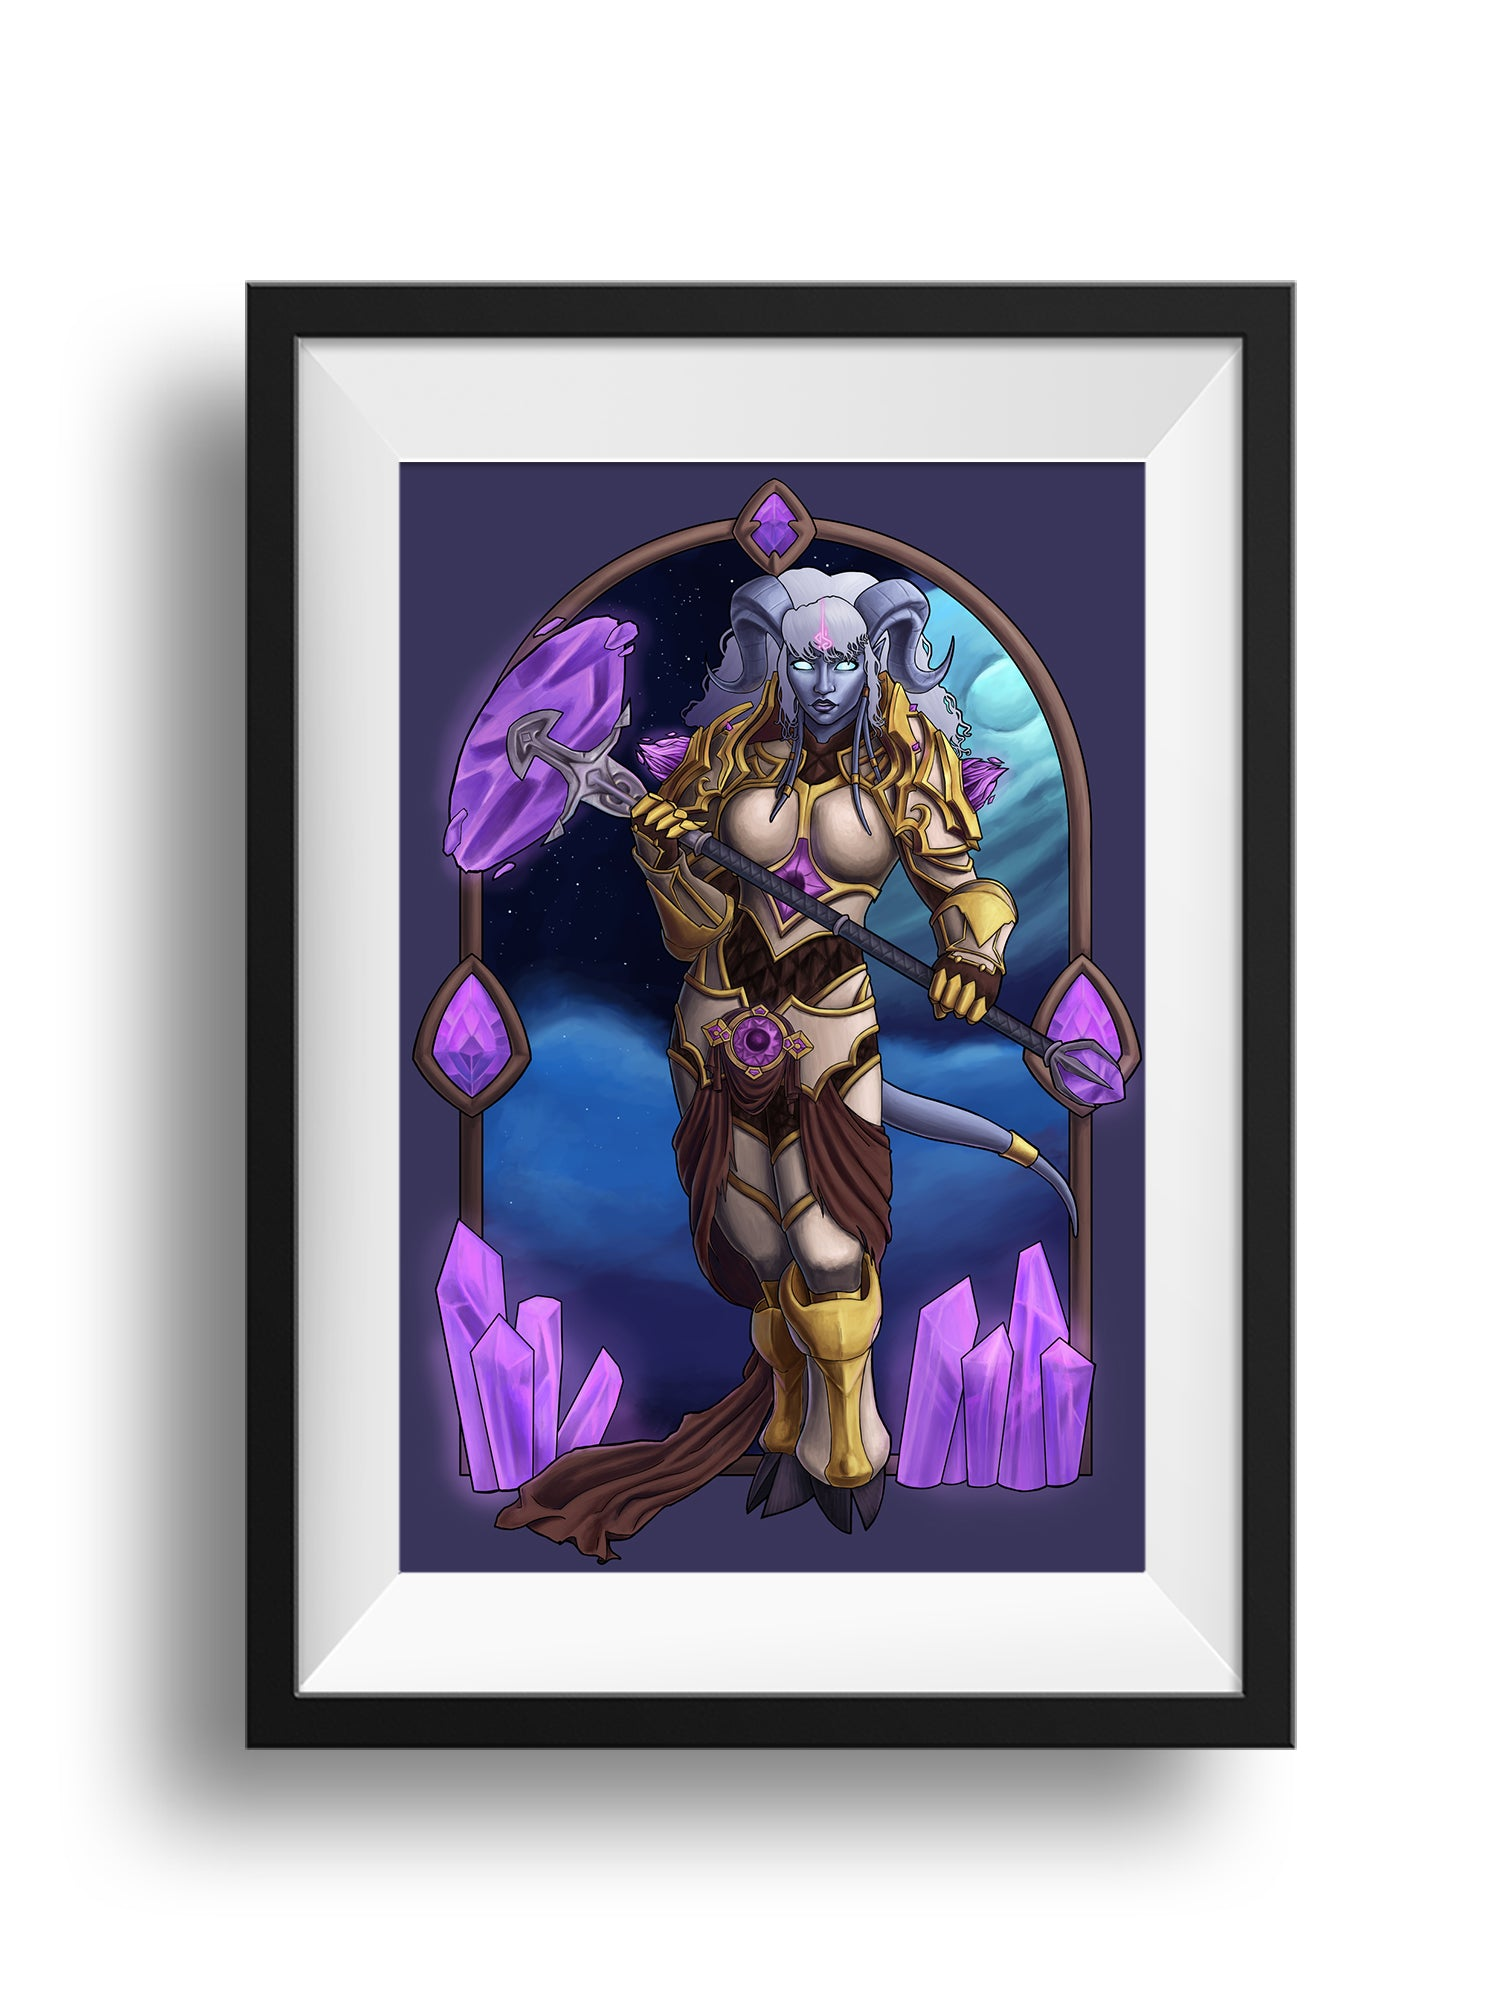 World of Warcraft - Will Is my Weapon - Print